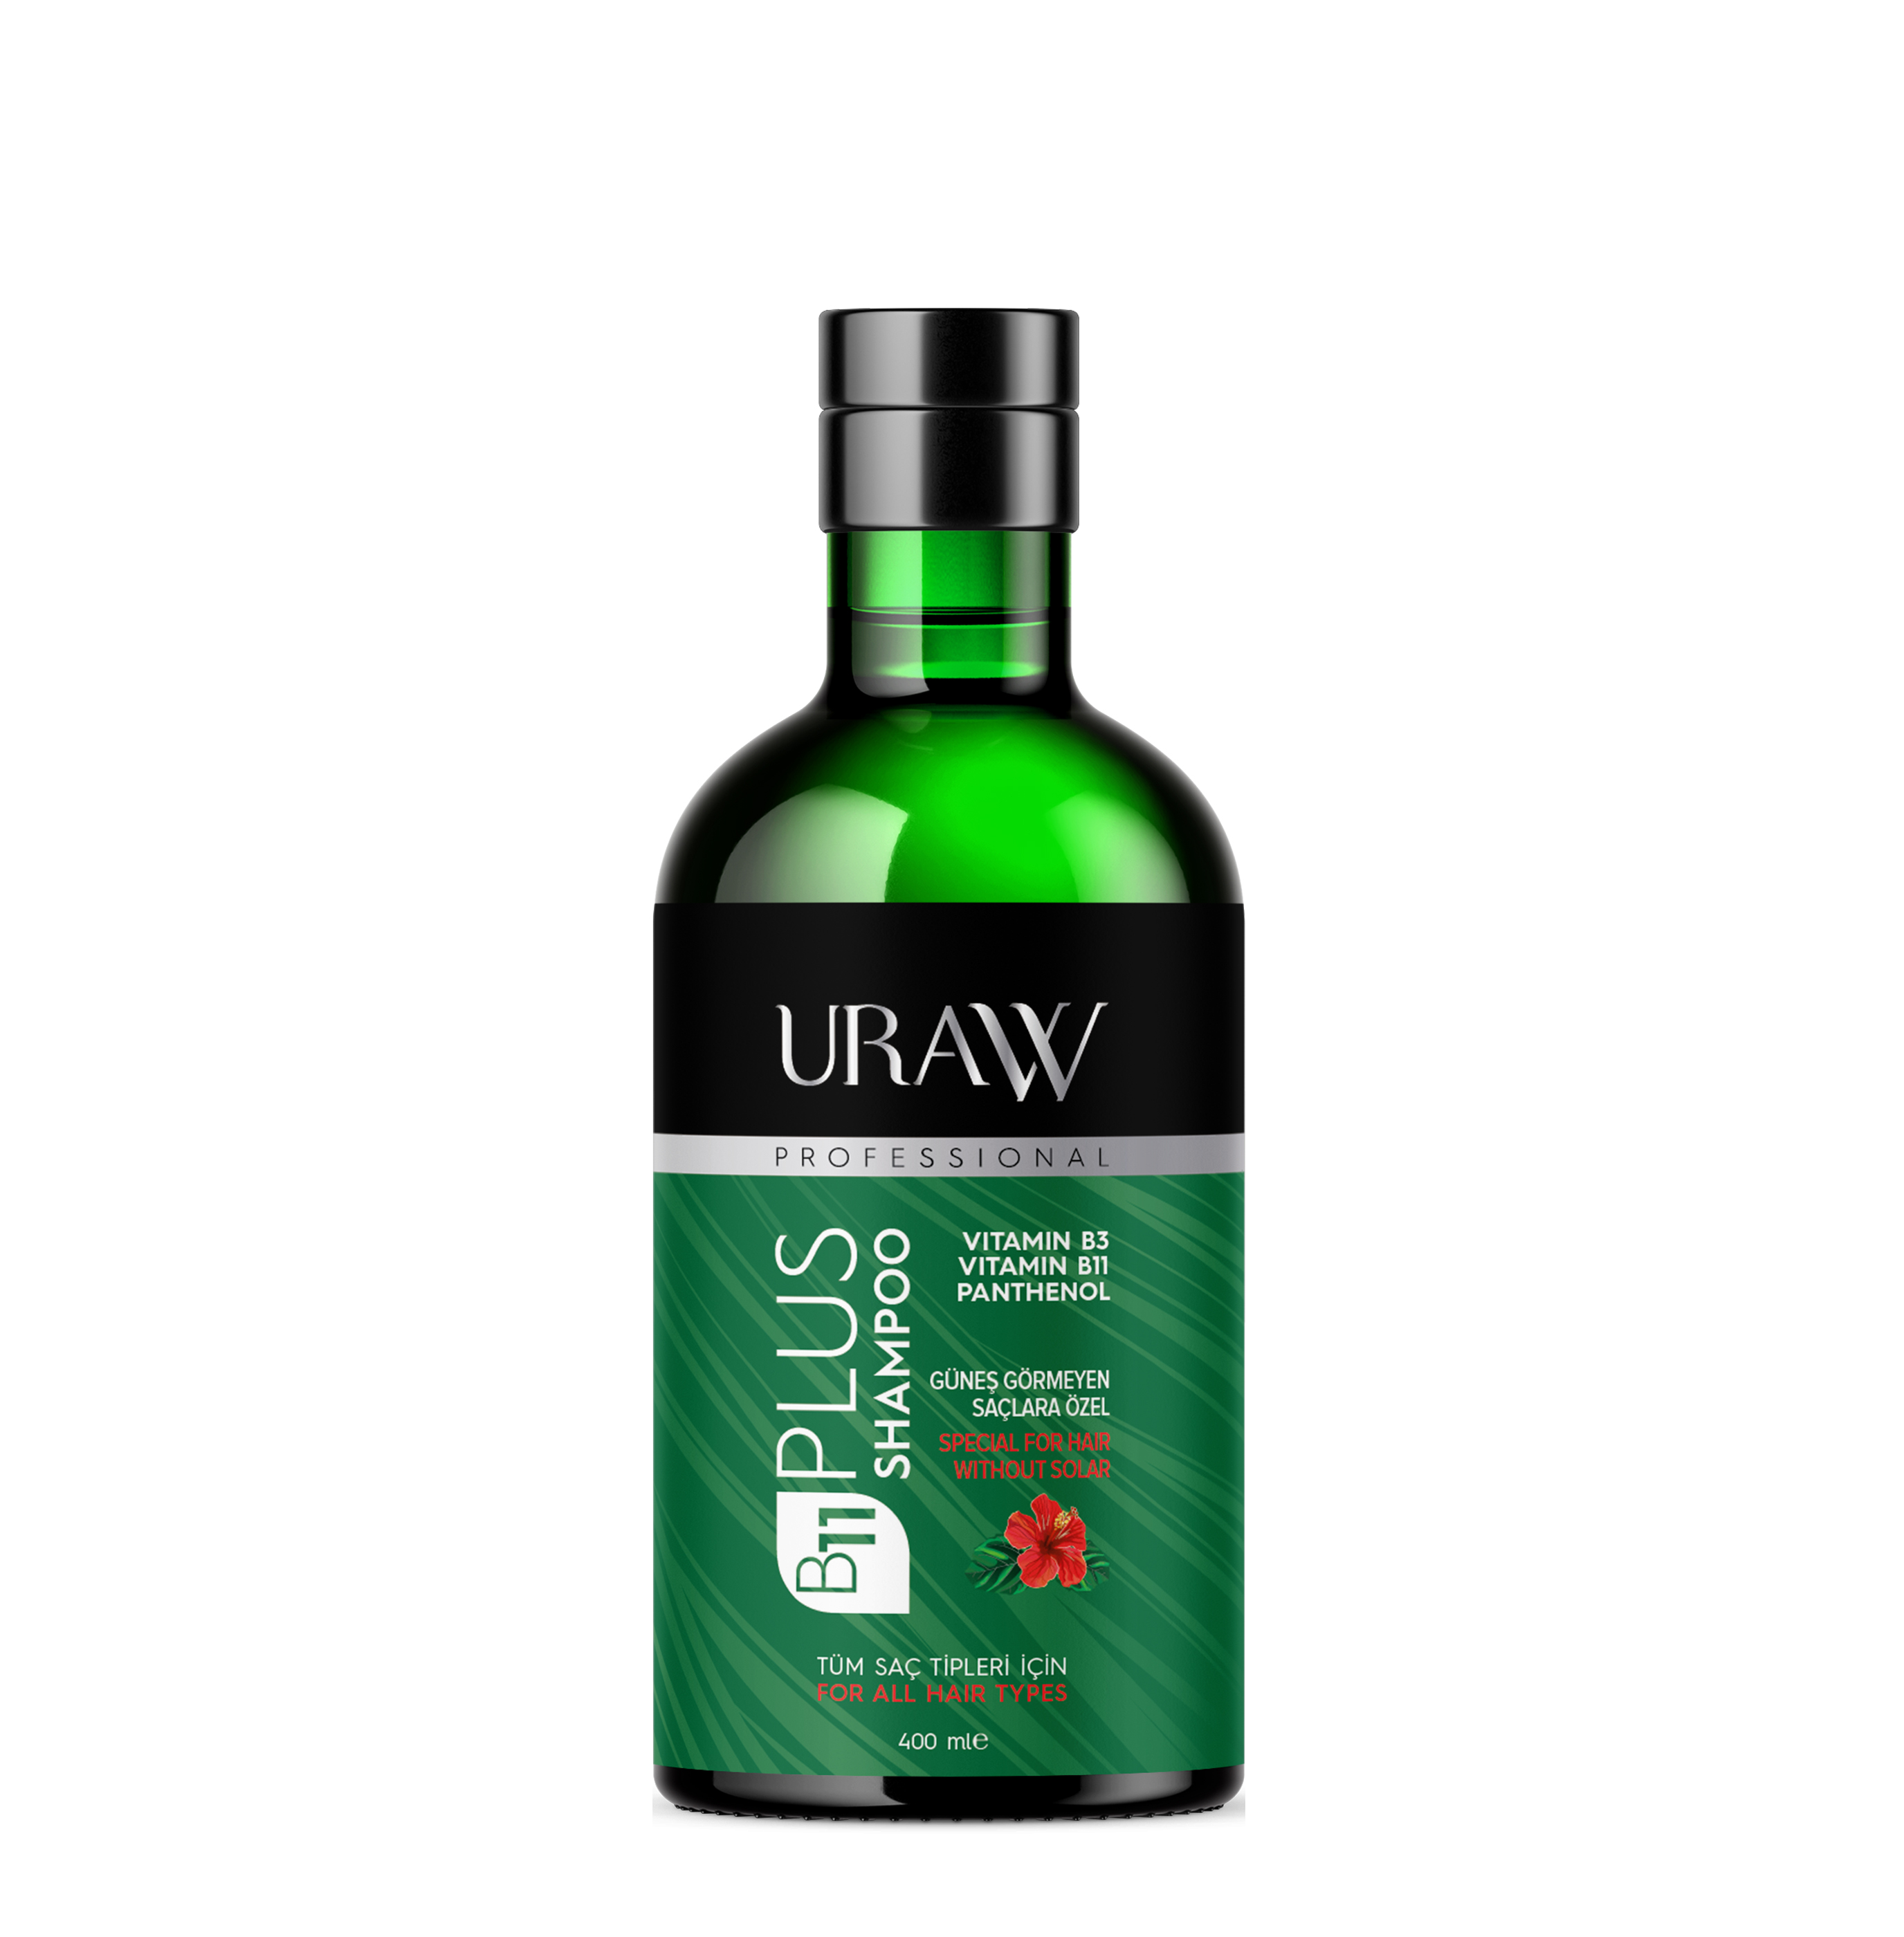 URAW B11 PLUS HAIR SHAMPOO Sunless Hair, Softer When Your Hair Is Oiled Later